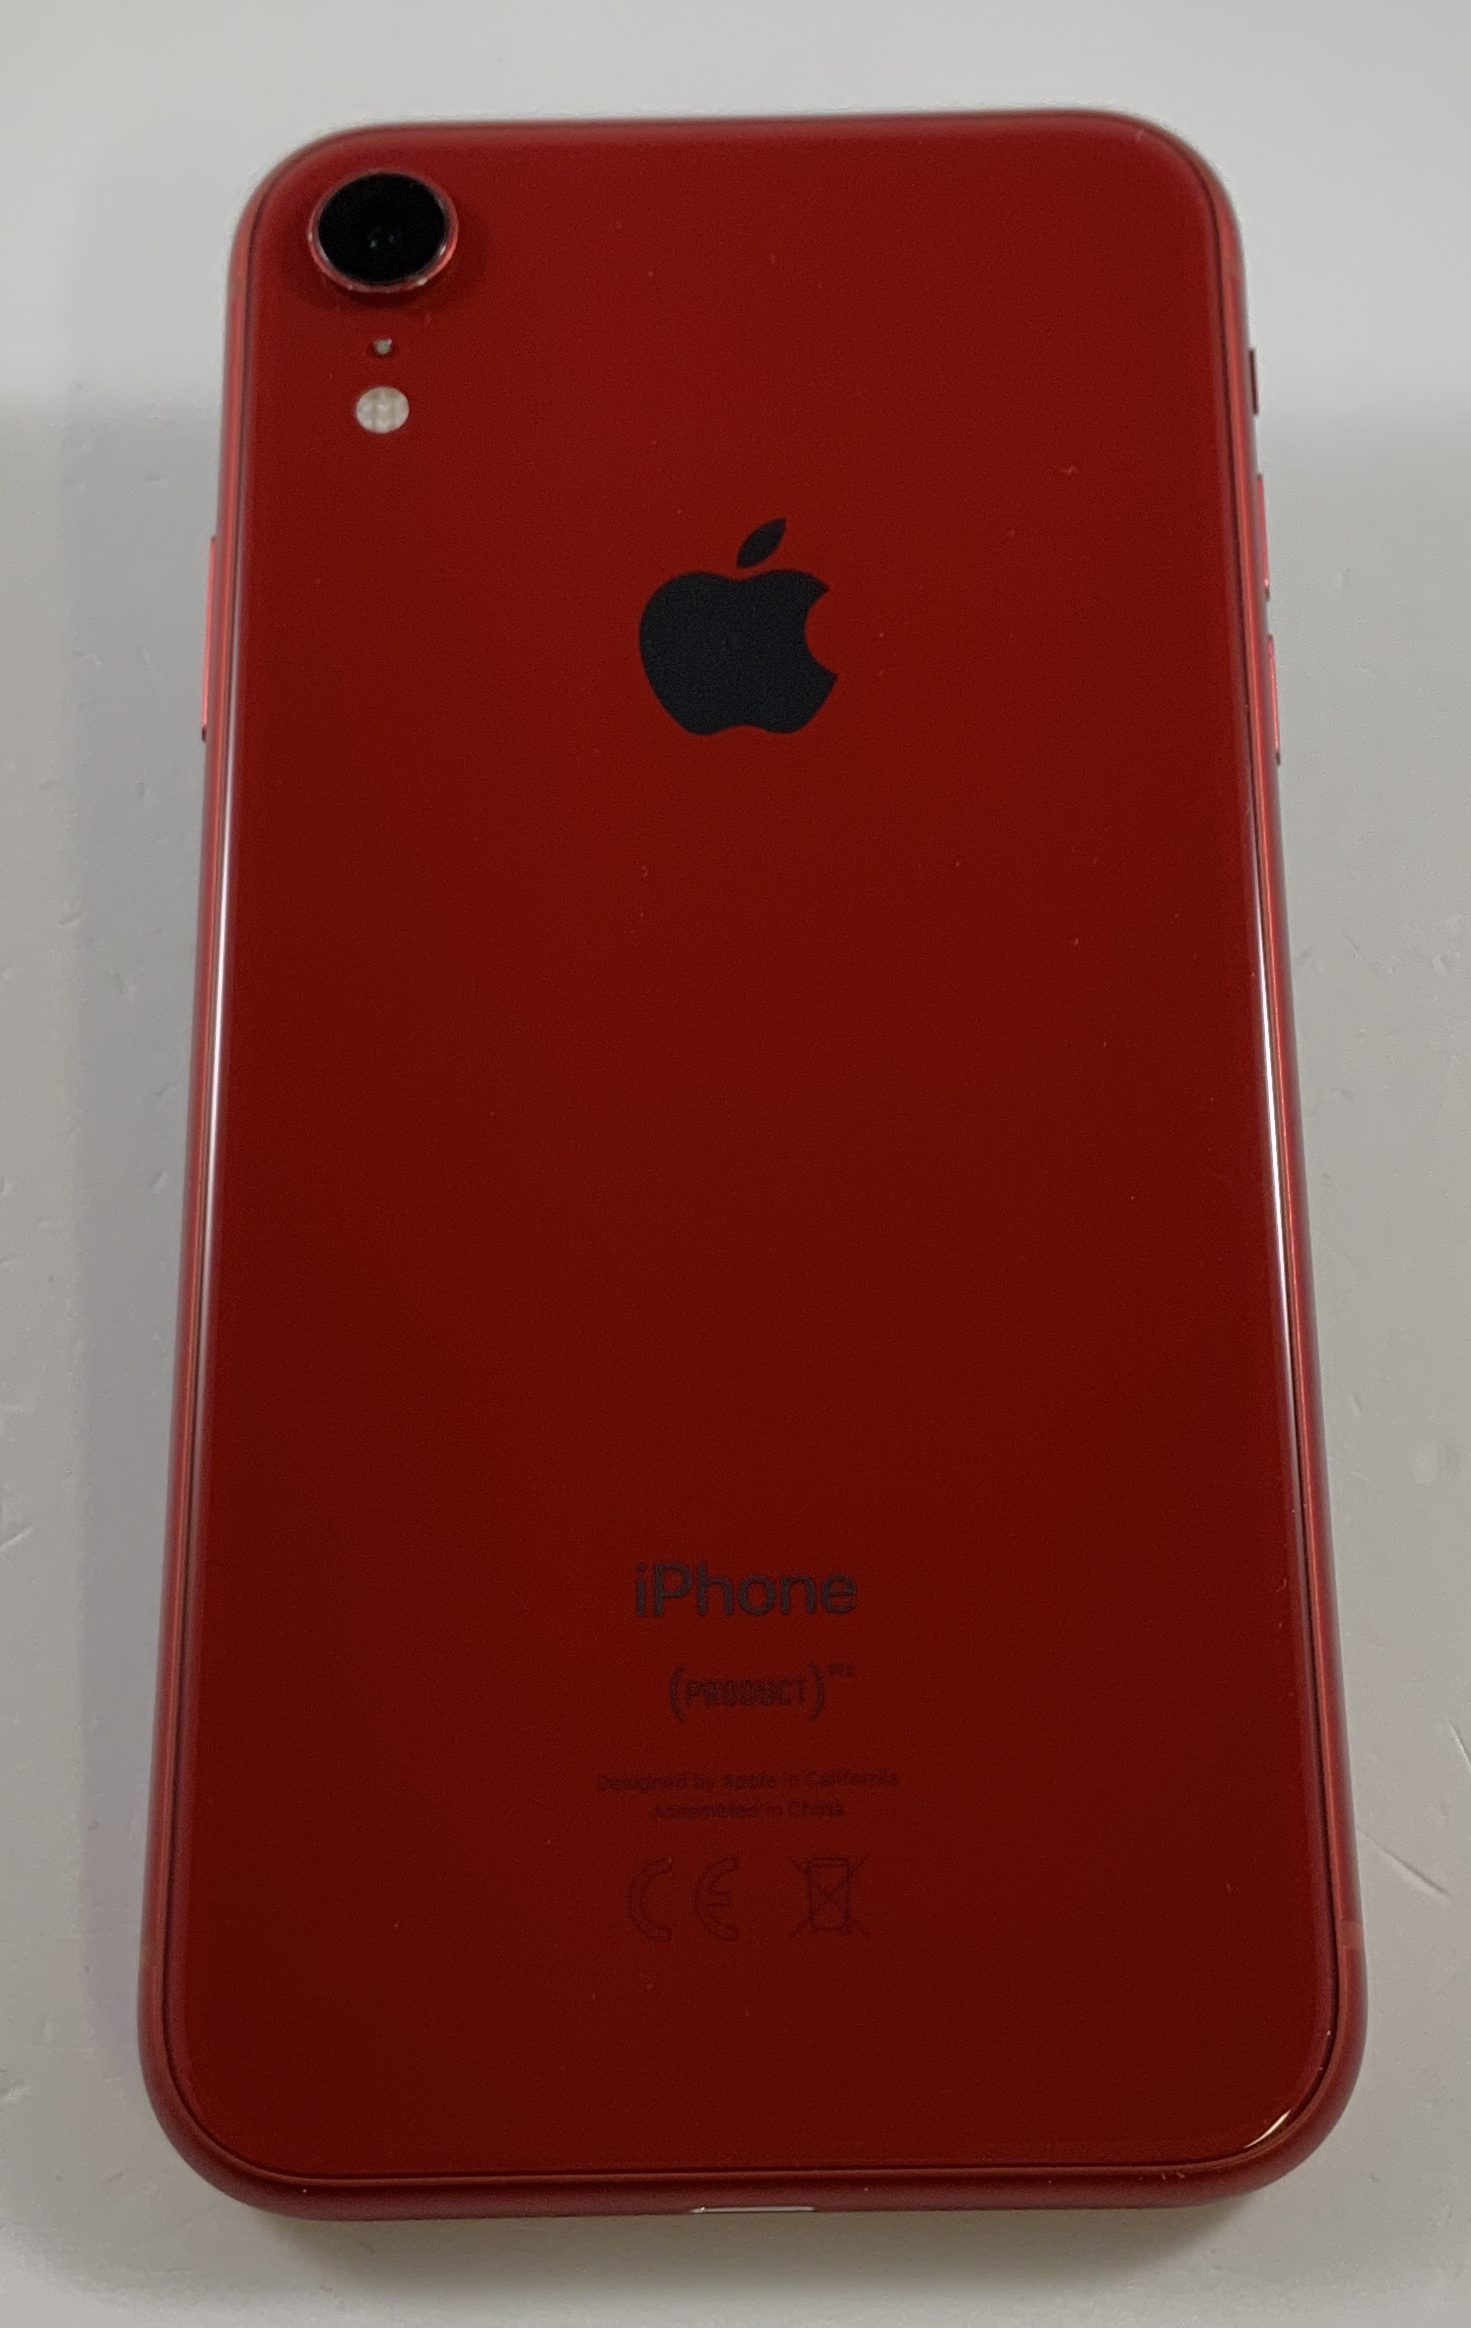 iPhone XR 64GB, 64GB, Red, image 2